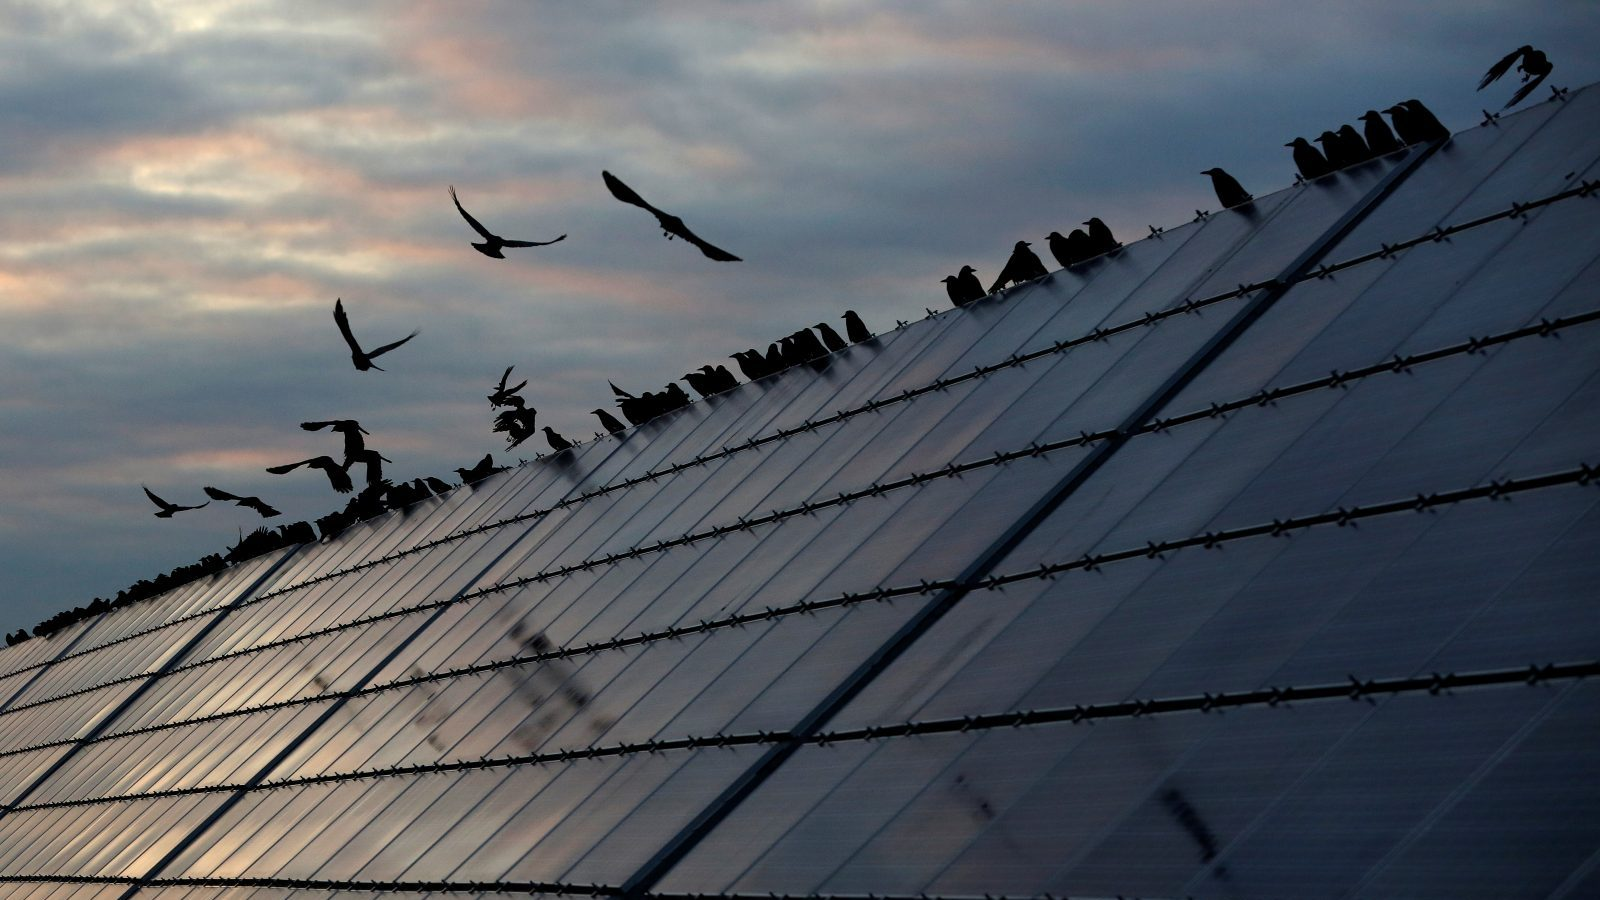 Ravens sit on solar panels at the Abakan solar electric station owned by Russian electricity firm EuroSibEnergo of En+ Group, in a suburb of the Siberian town of Abakan, in the Republic of Khakassia, Russia September 26, 2017. Picture taken September 26, 2017. REUTERS/Ilya Naymushin - RC17CCD05CB0